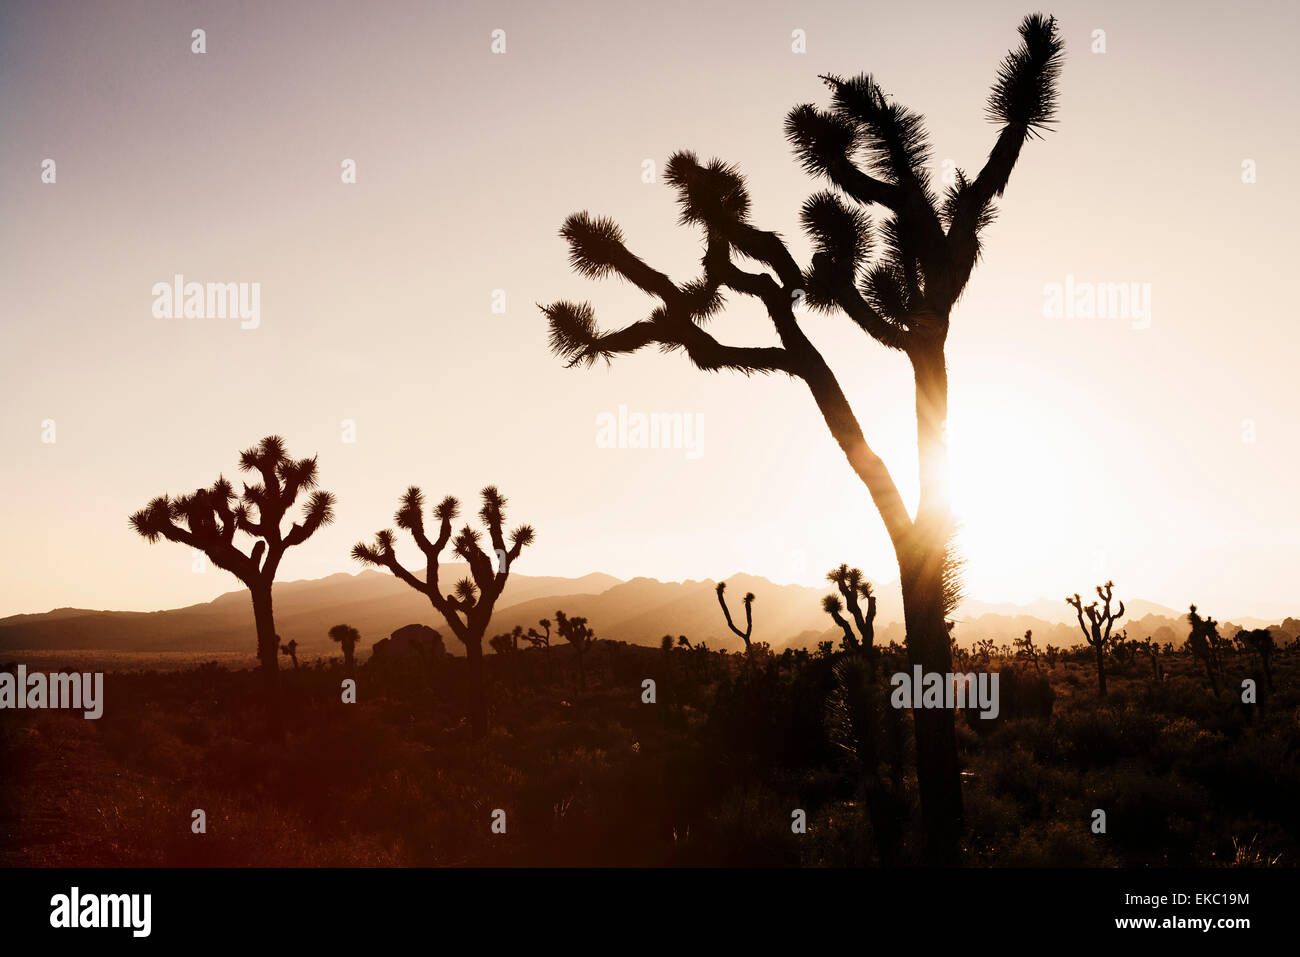 Joshua trees silhouette, Joshua Tree National Park, California, USA Photo Stock